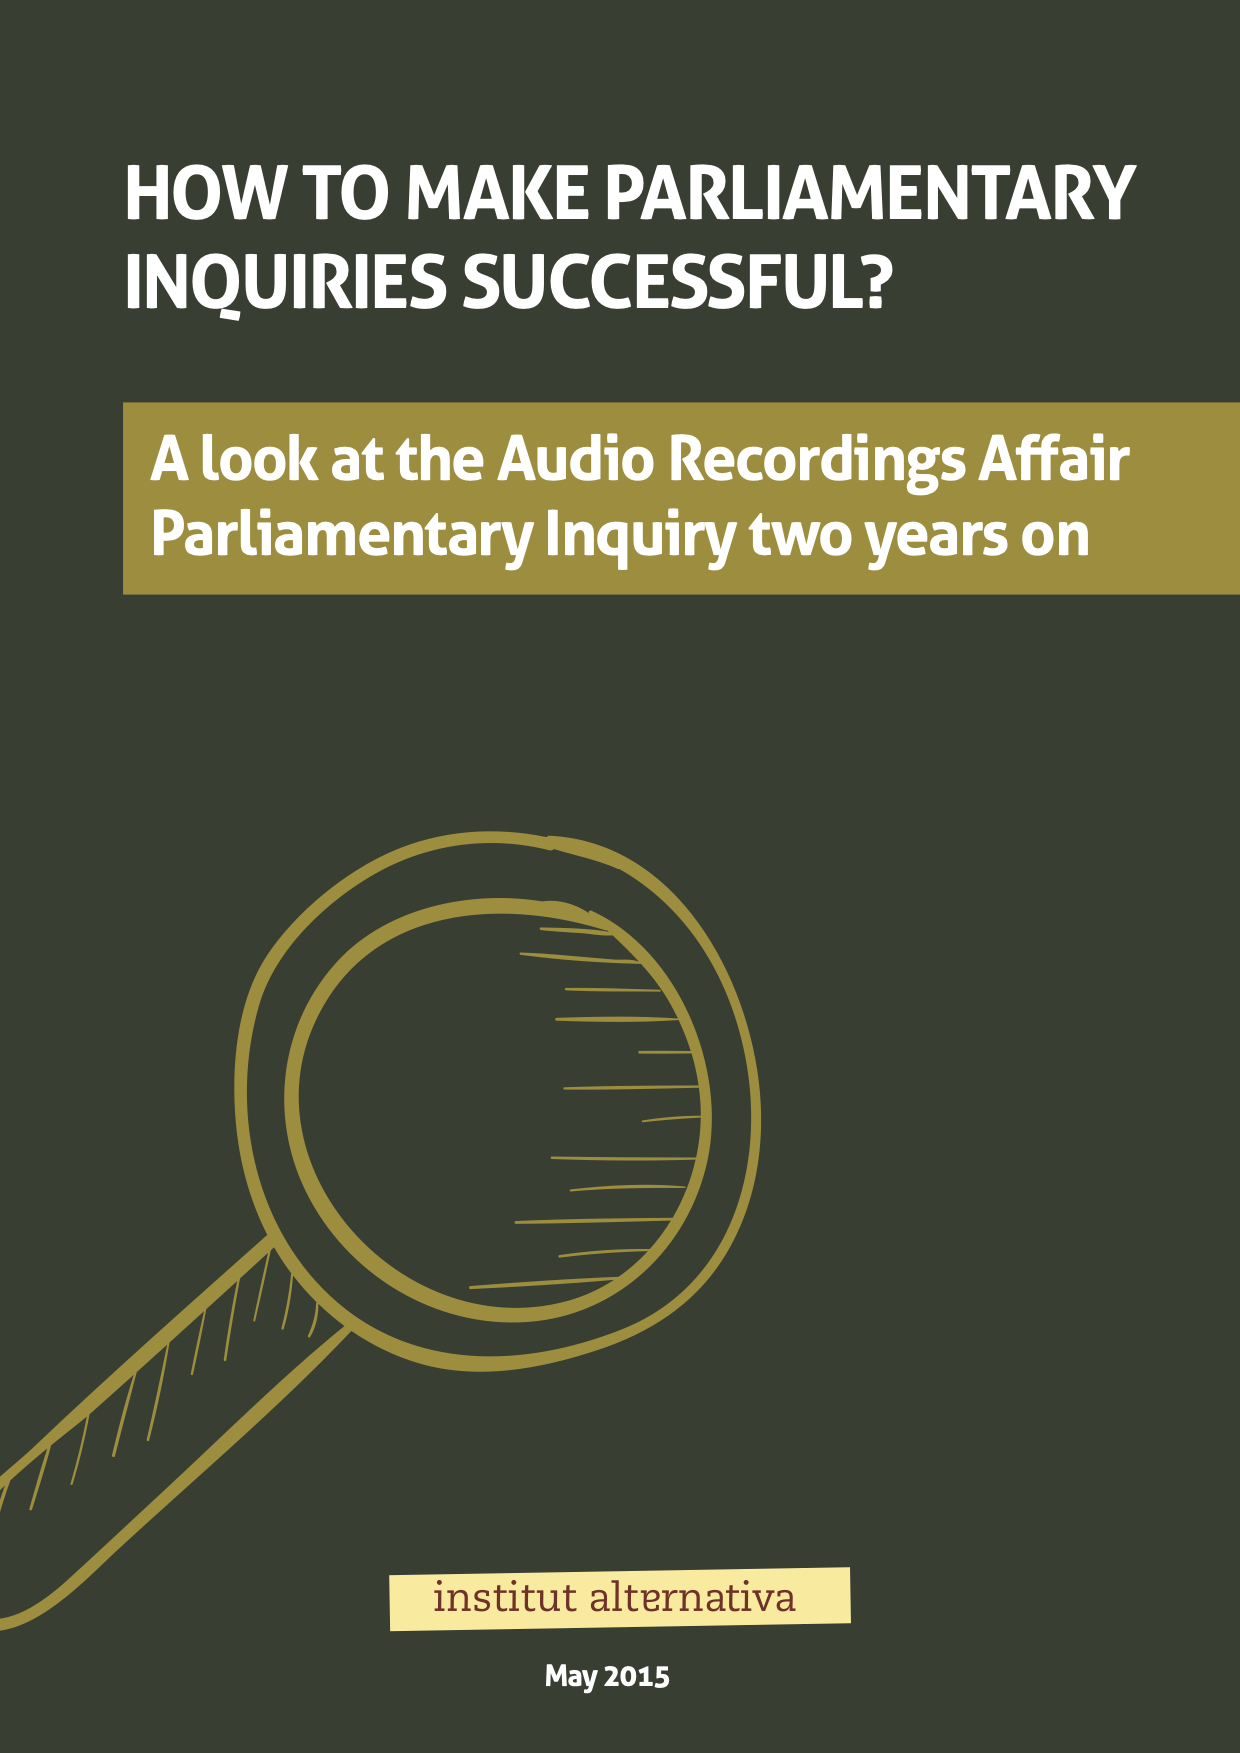 How to Make Parliamentary Inquiries Successful?